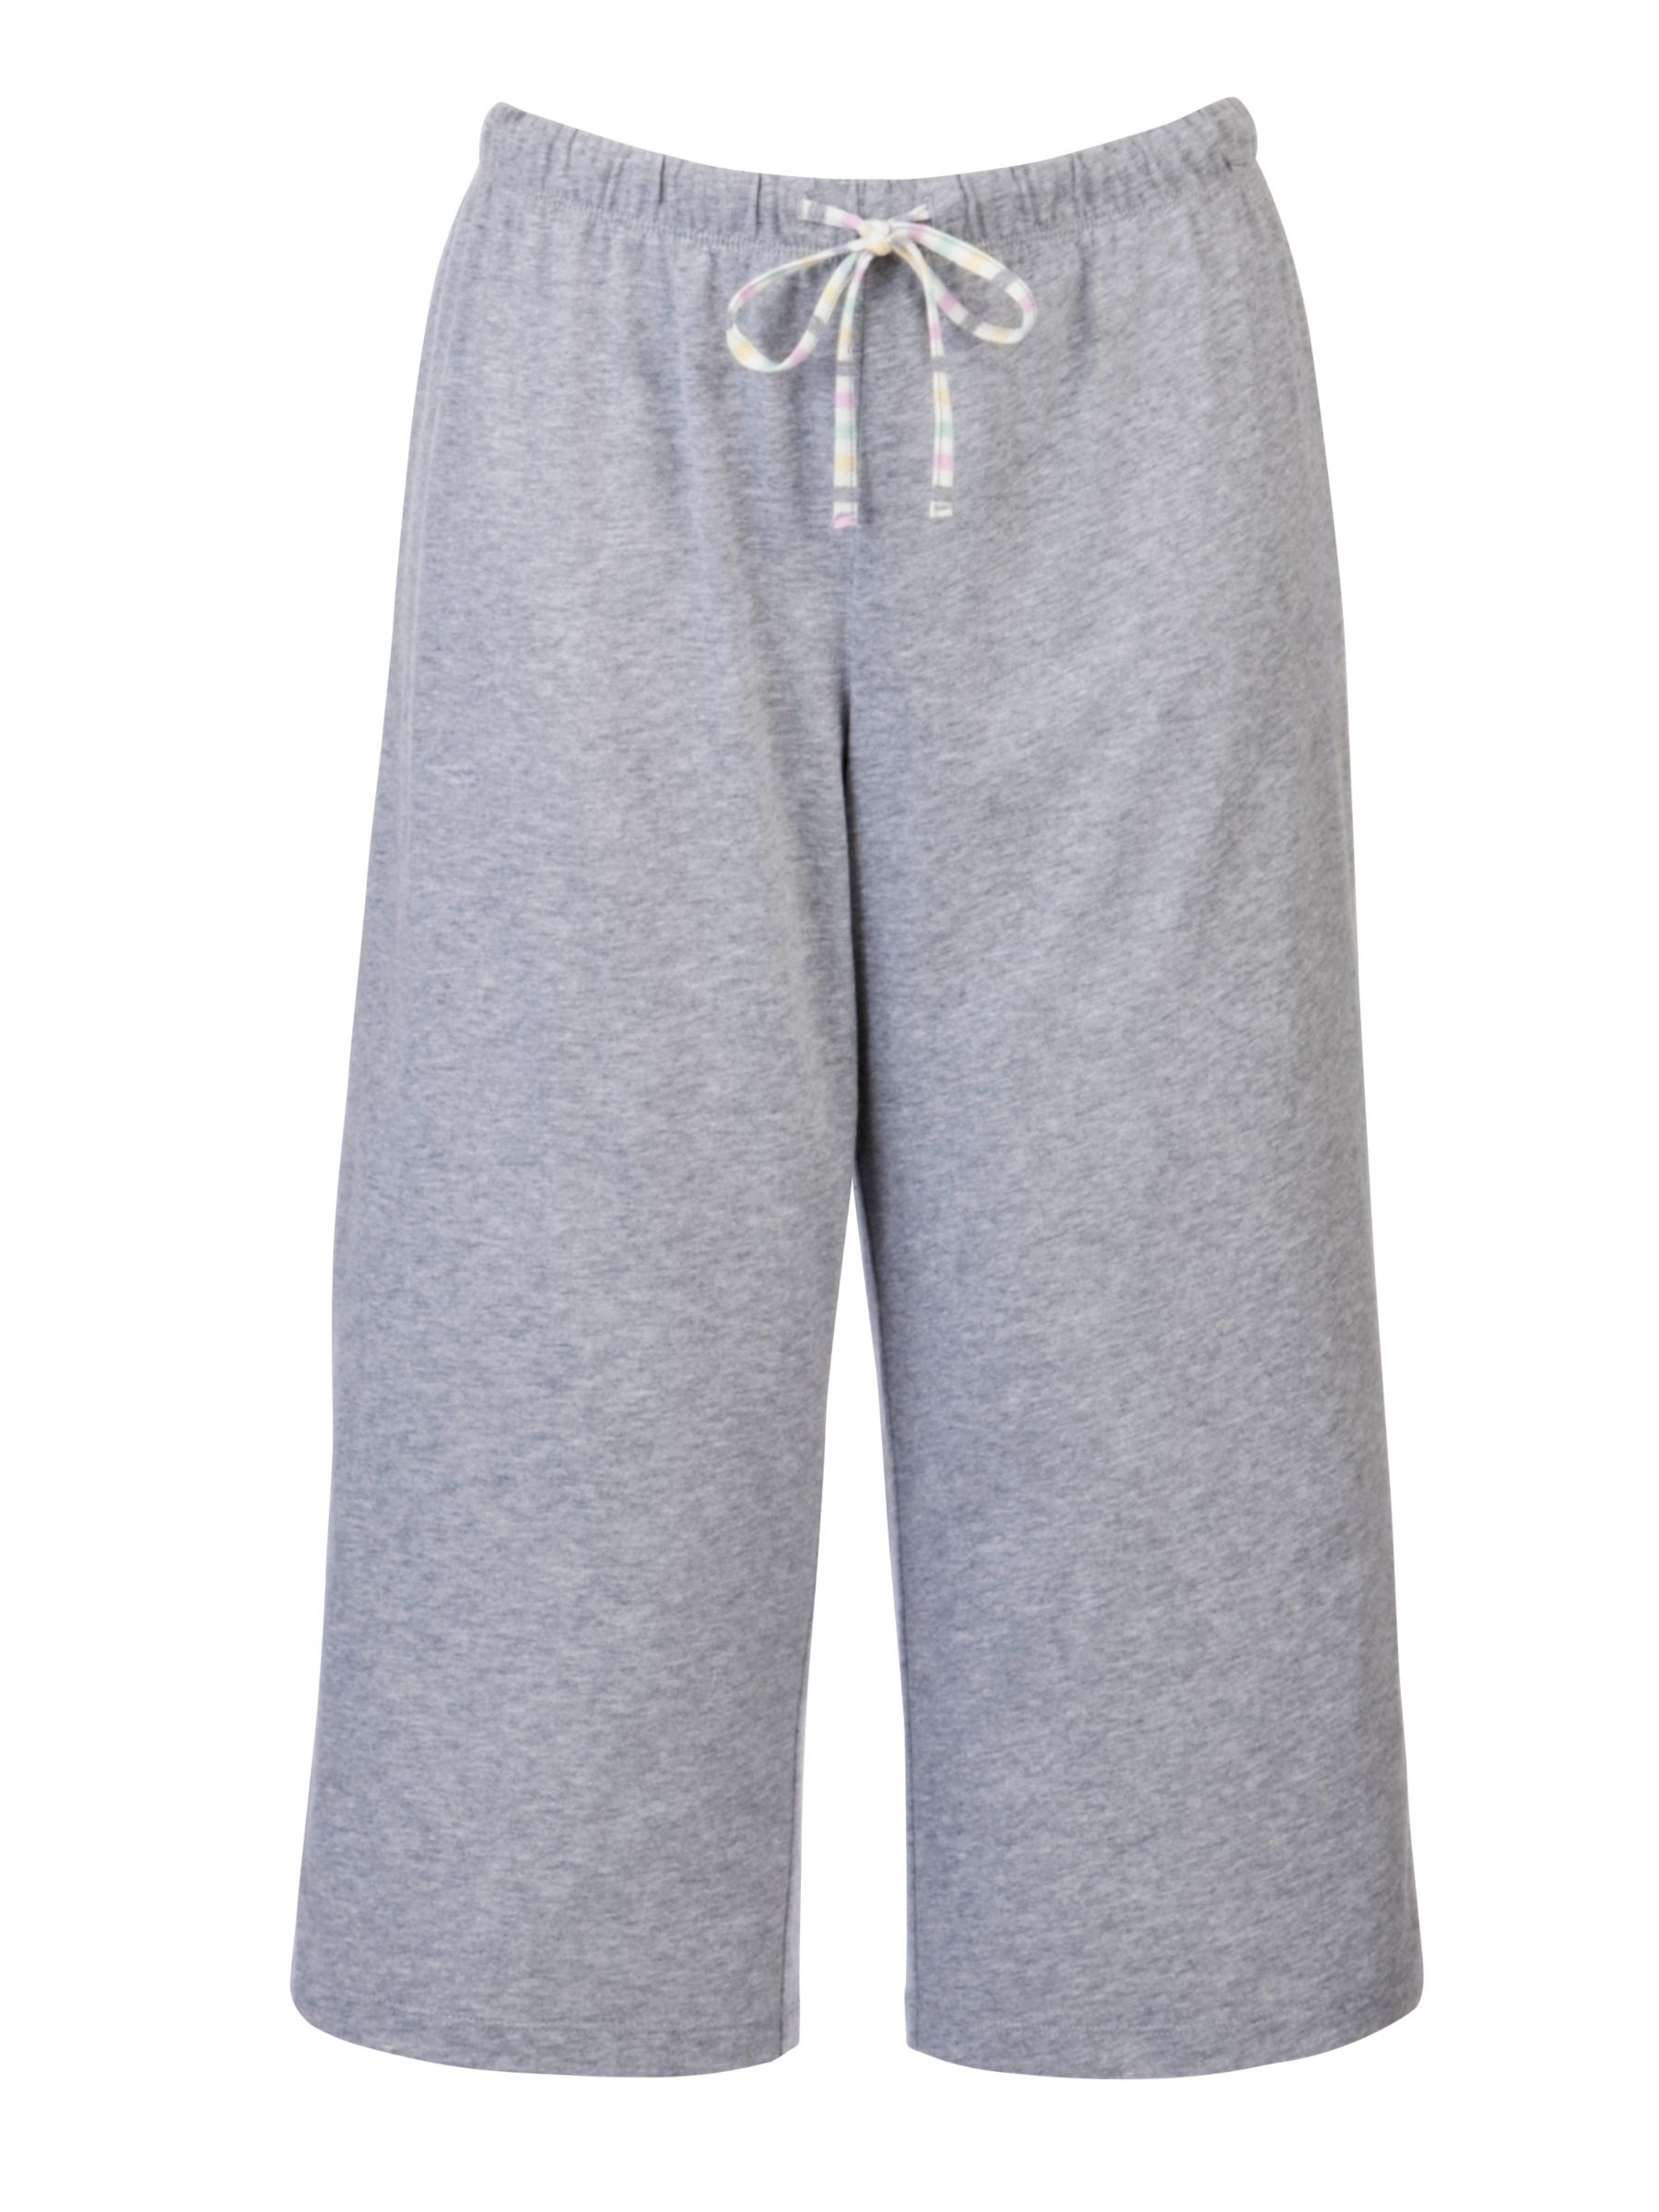 John Lewis Deauville Cropped Pyjama Bottoms, Grey